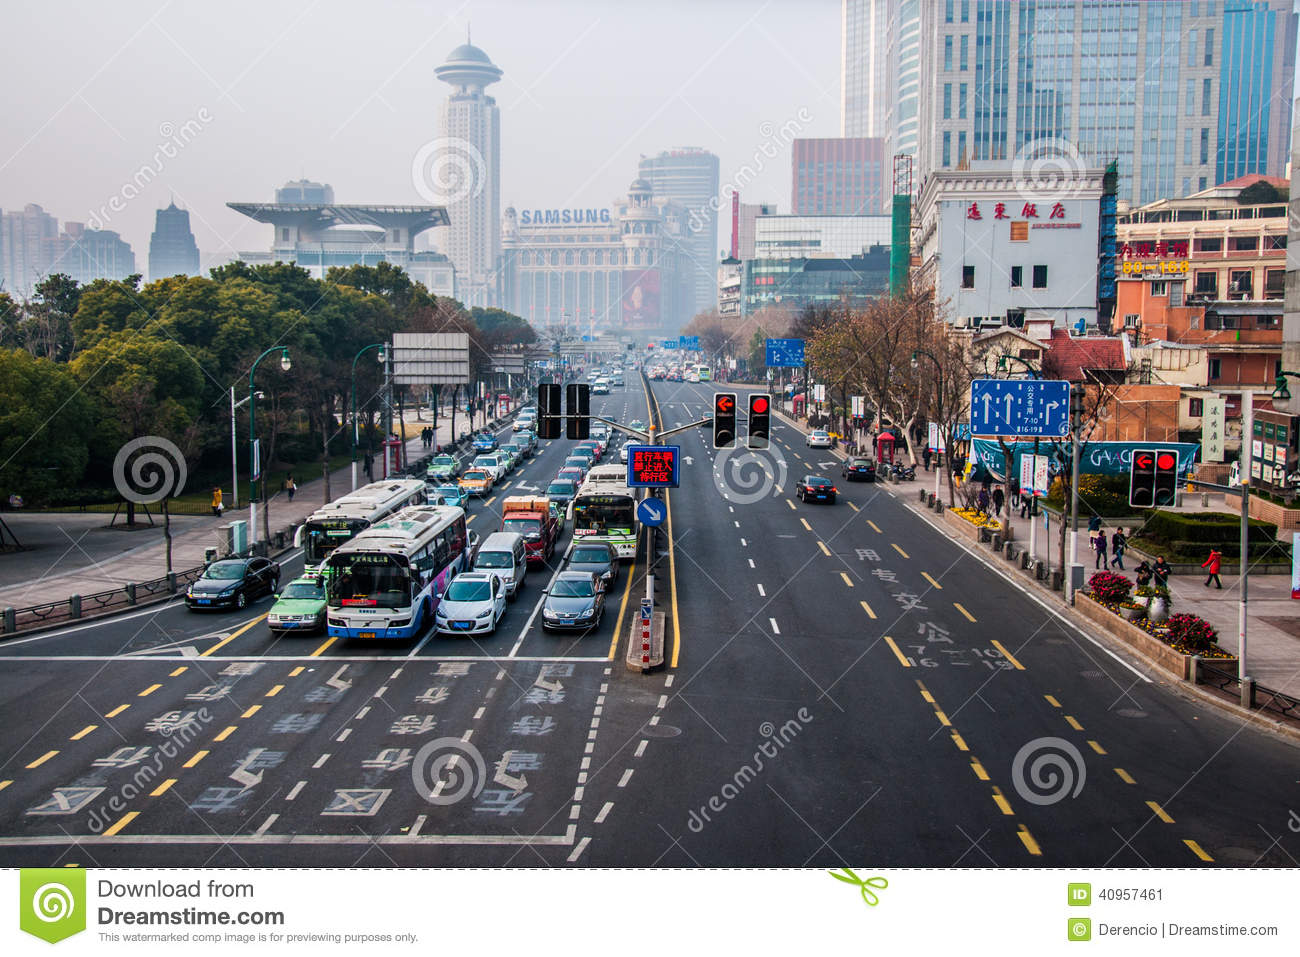 China 2014 Shanghai Center - Standard Street view - Cars on traffic ...